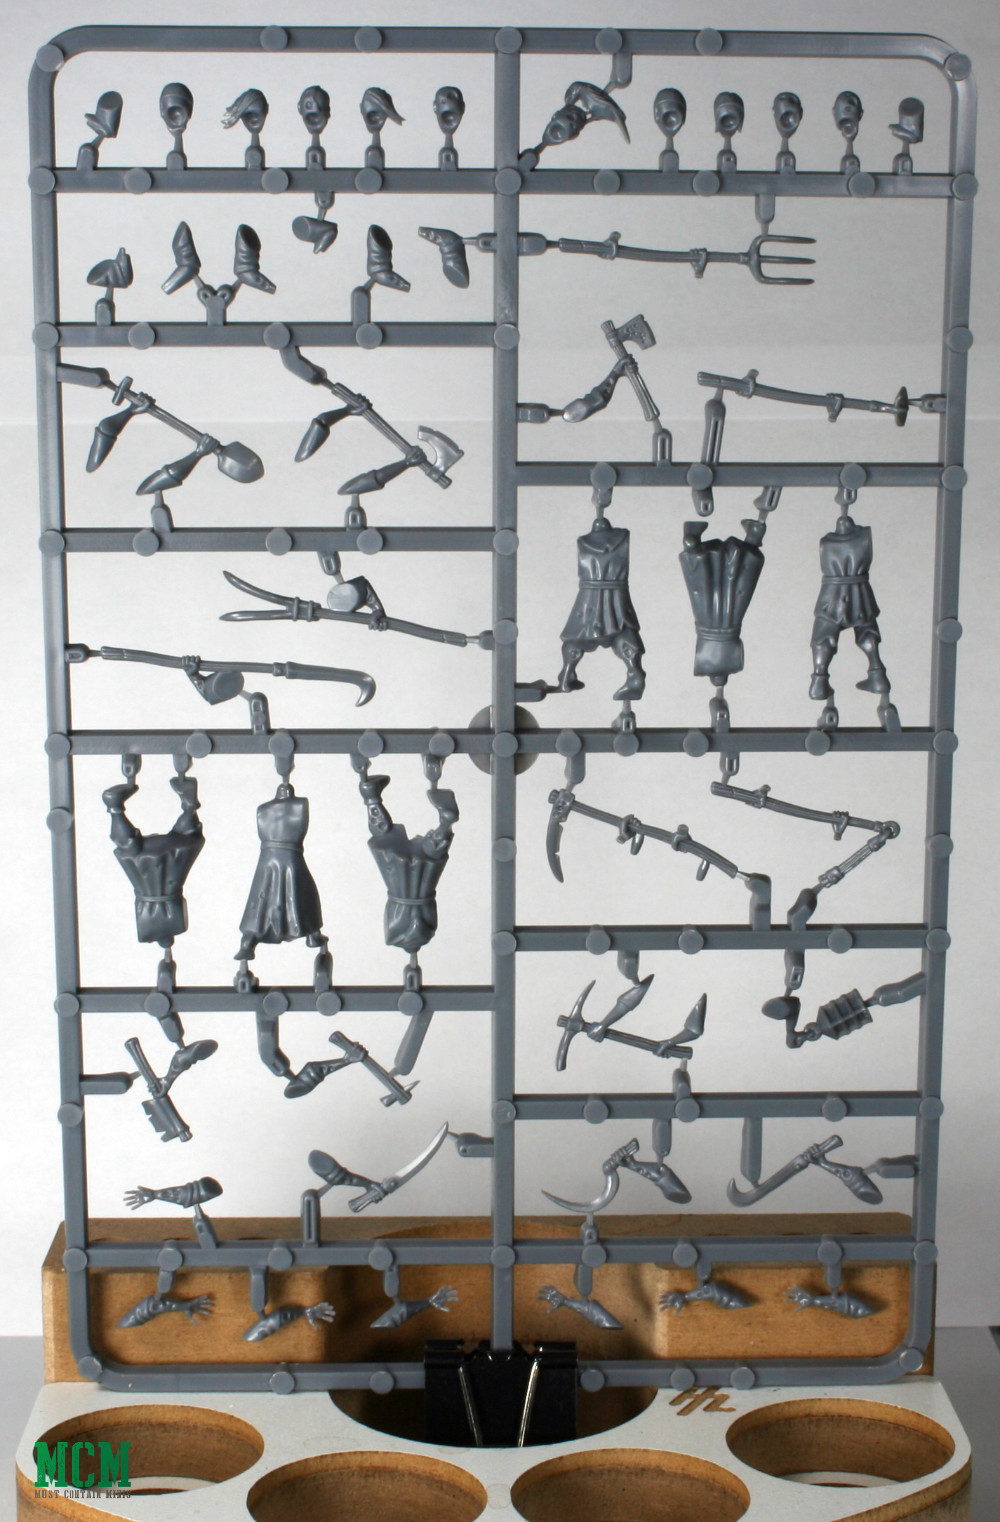 28mm Fantasy Peasant Zombies (townsfolk) - Sprue by Fireforge Games